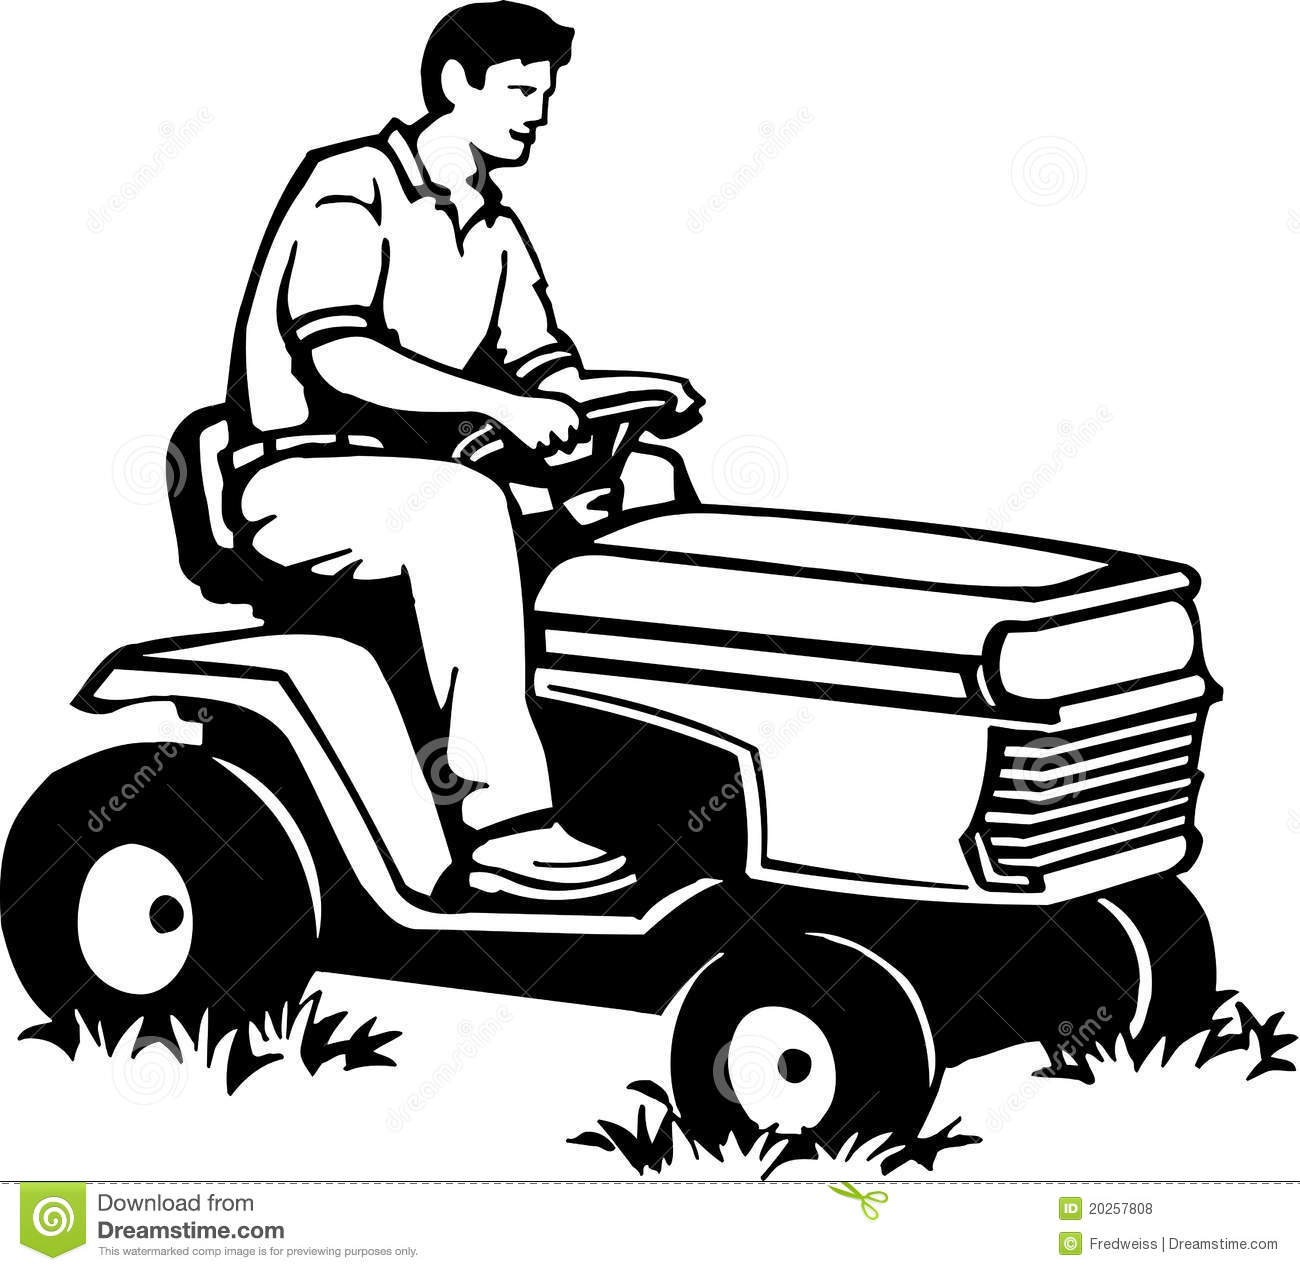 Riding Lawn Mower Royalty Free Stock Photos